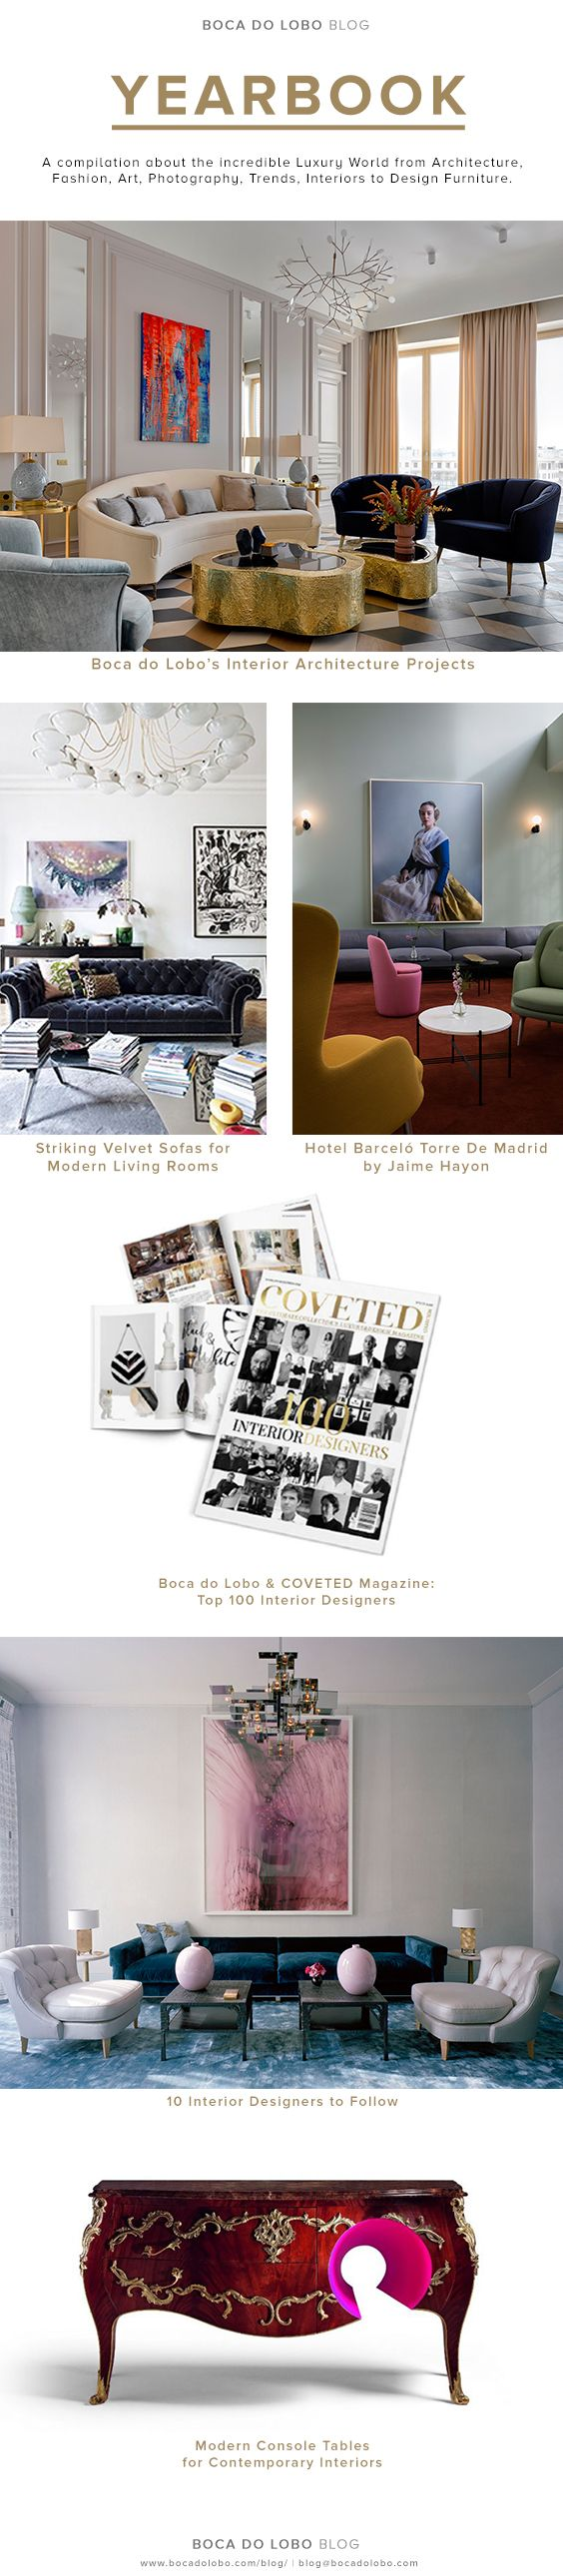 Boca do Lobo Blog's Design Yearbook is the ultimate platform that offers you the latest tendencies in the luxury world, from architecture, fashion, art, photography, trends, interiors to design furniture  | www.bocadolobo.com #bocadolobo #luxuryfurniture #exclusivedesign #interiodesign #designideas #interiodesign #decor #luxury ARCHITECTURE, ART, DESIGN FURNITURE, DESIGN YEARBOOK, EBOOK, FASHION, FREE EBOOK, INTERIORS, PHOTOGRAPHY, TOP INTERIOR DESIGNERS, TRENDS, YEARBOOK